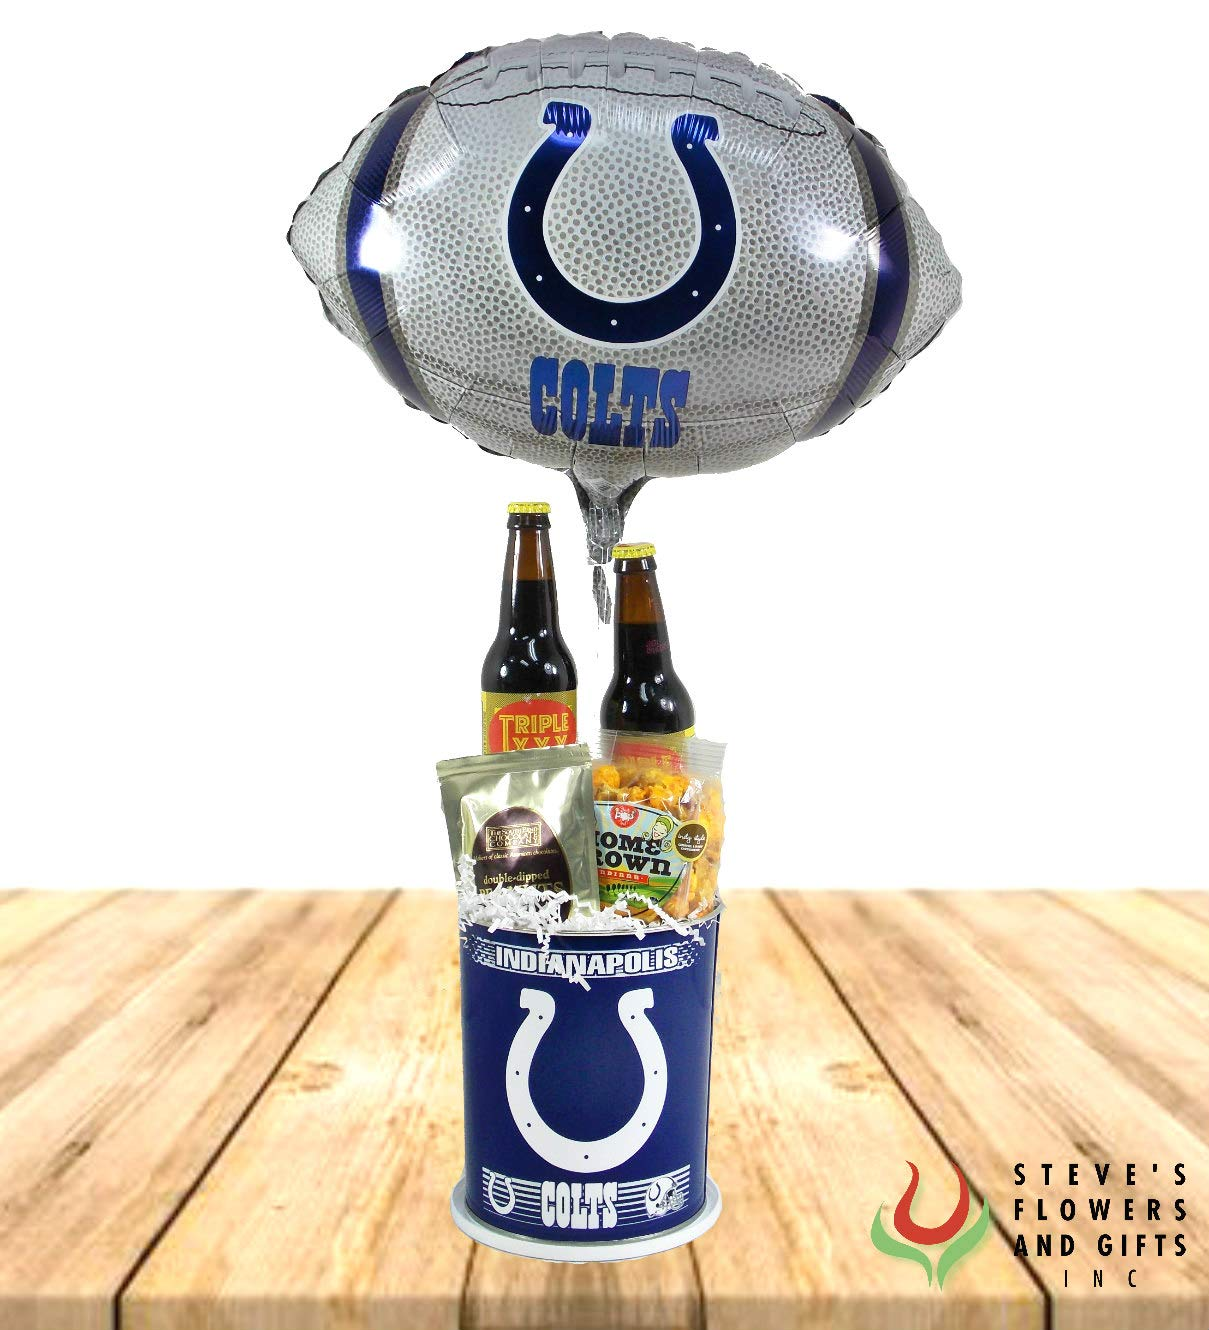 Indianapolis Colts Gourmet Bucket by Steve's Flowers and Gifts - Fresh Flowers Hand Delivered - Indianapolis Area